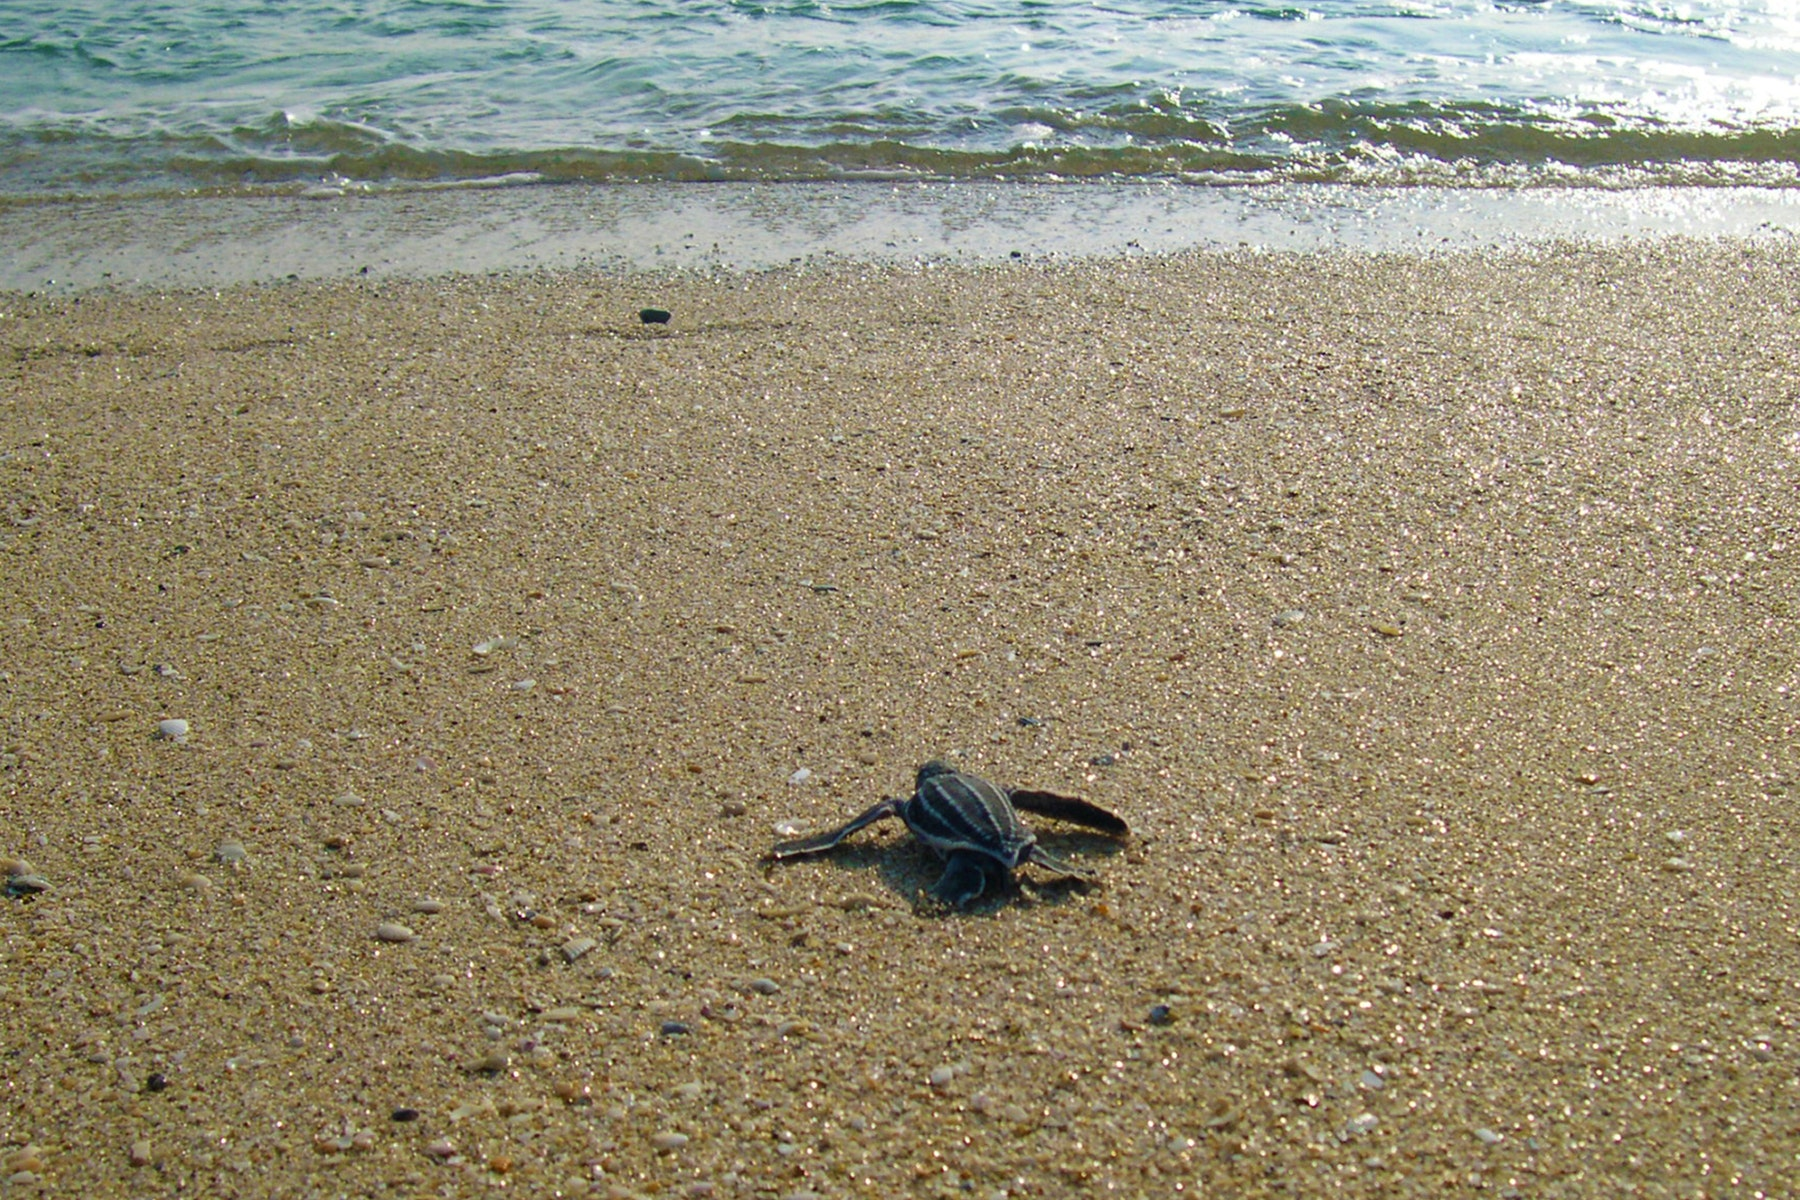 leatherback sea turtle hatchling on beach headed to ocean